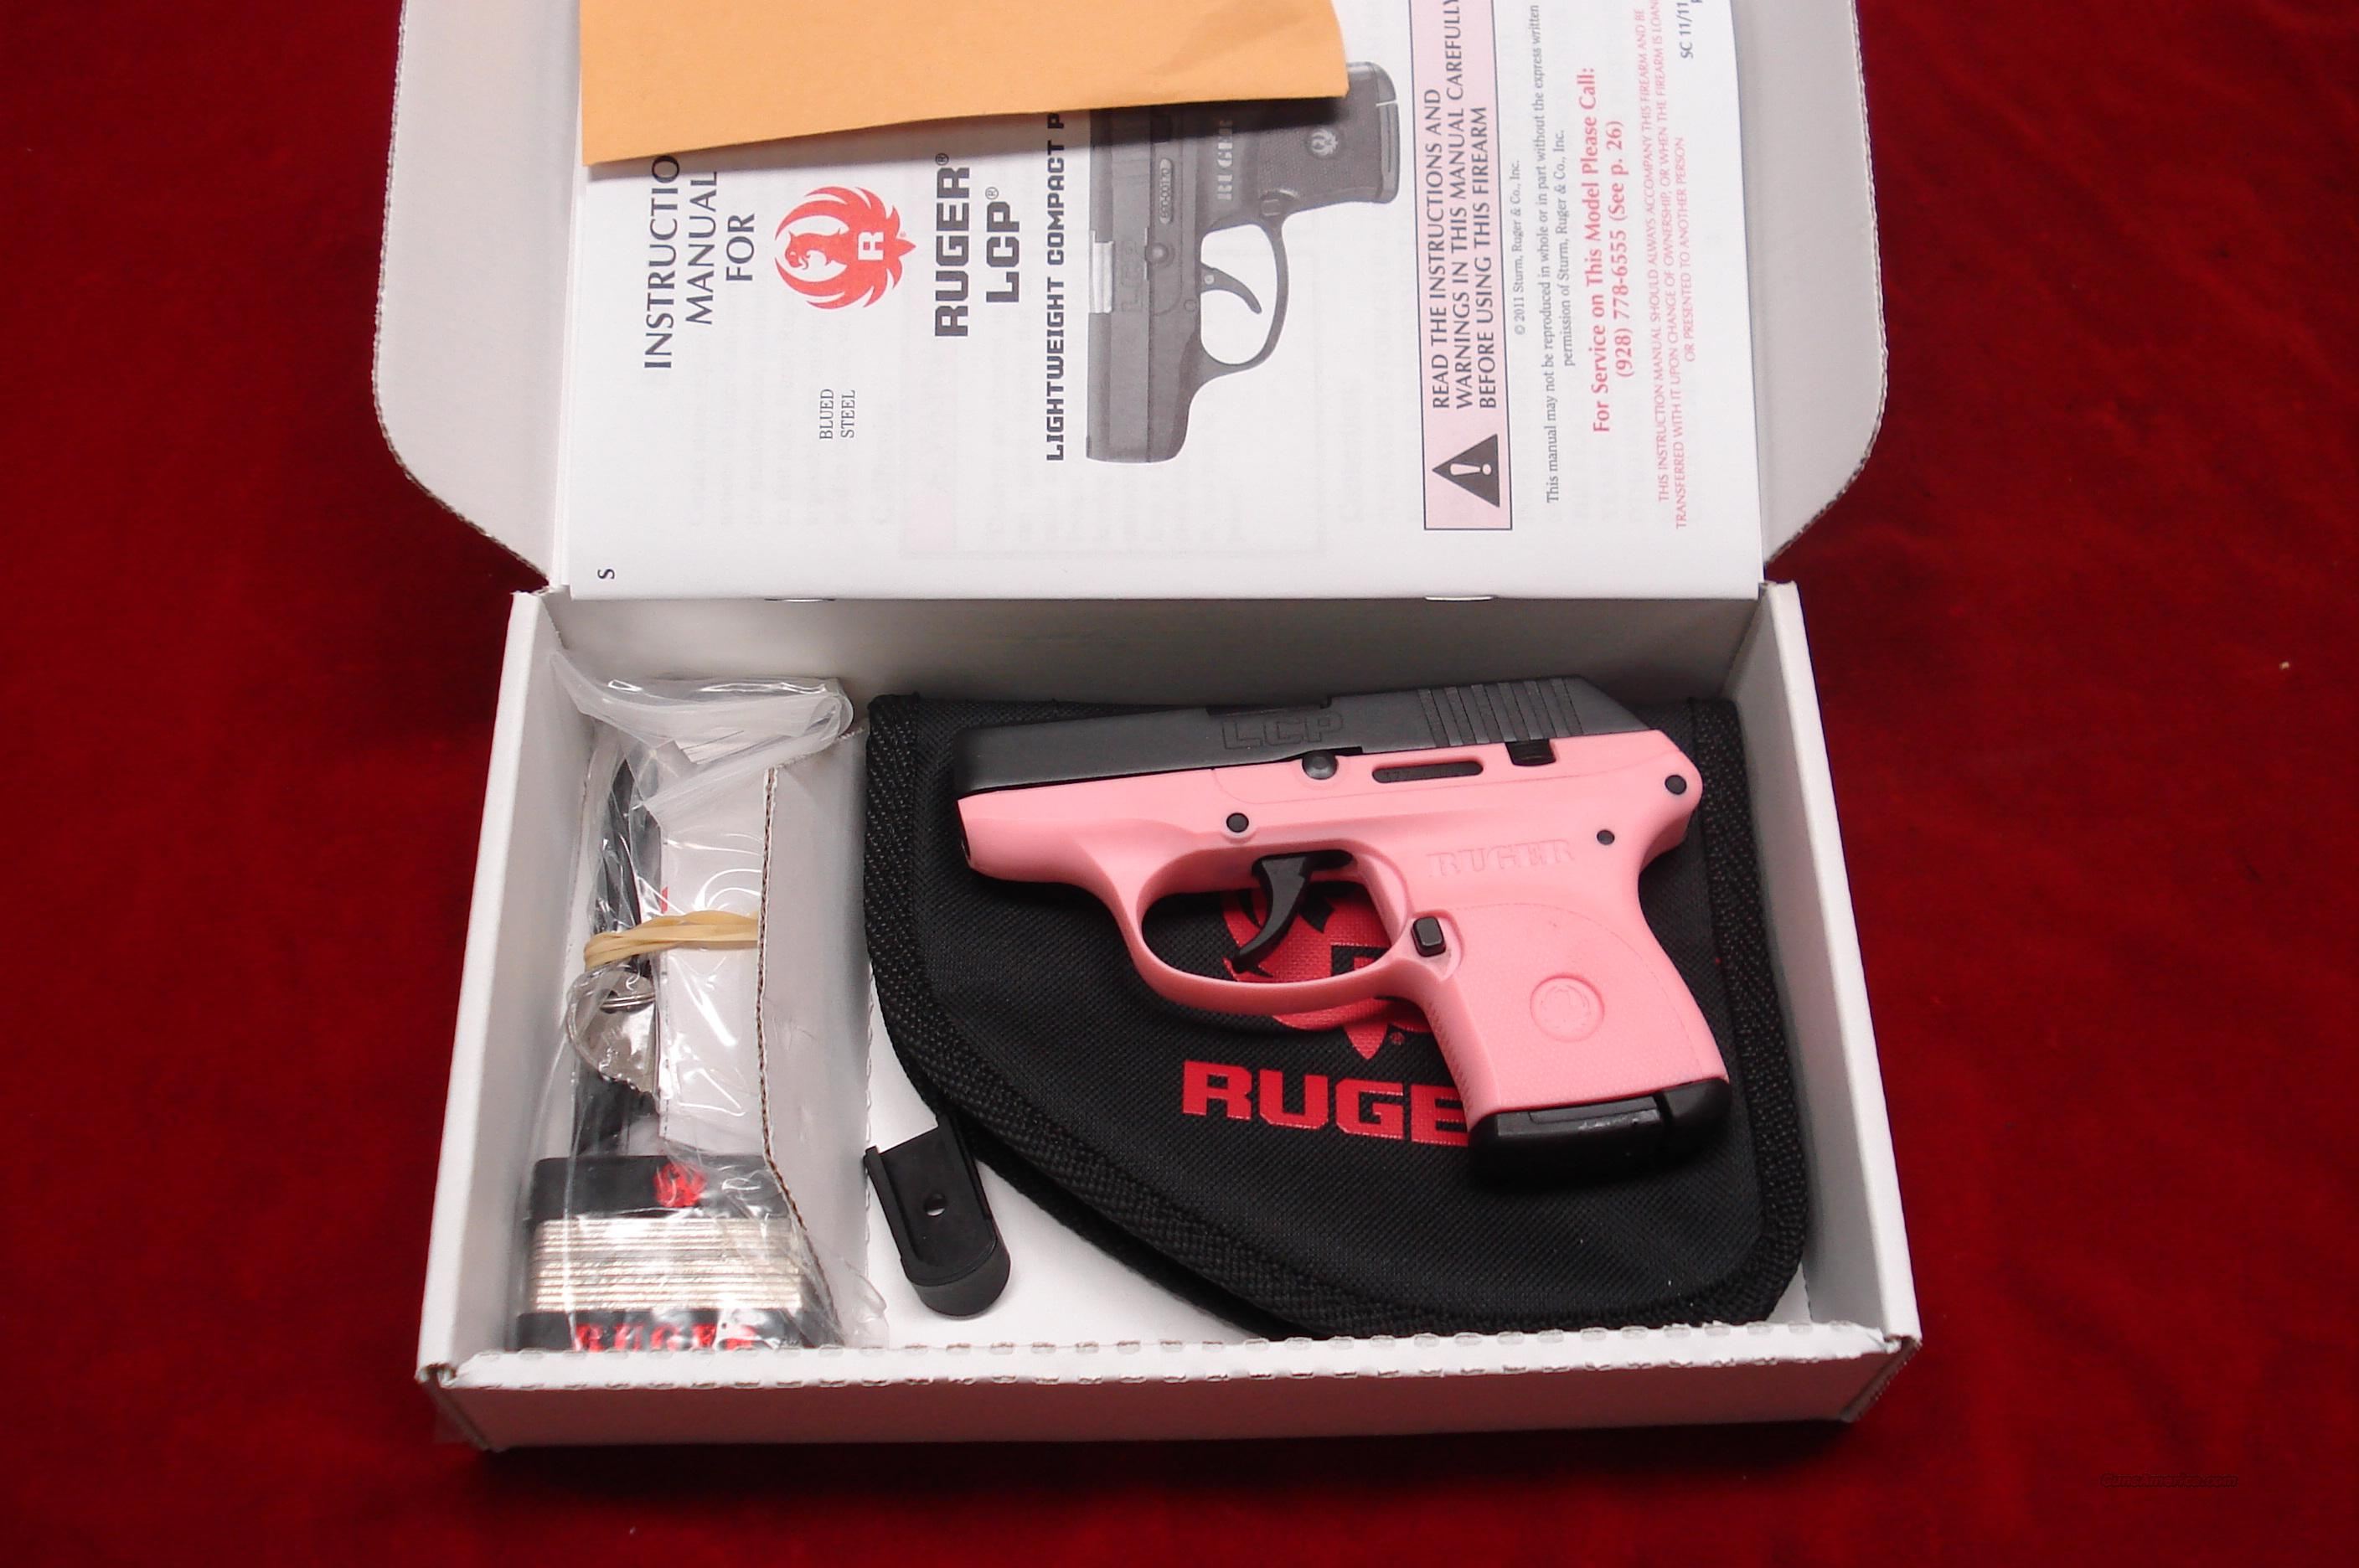 RUGER PINK LCP (Lightweight Compact Pistol) 380CAL. NEW  Guns > Pistols > Ruger Semi-Auto Pistols > LCP